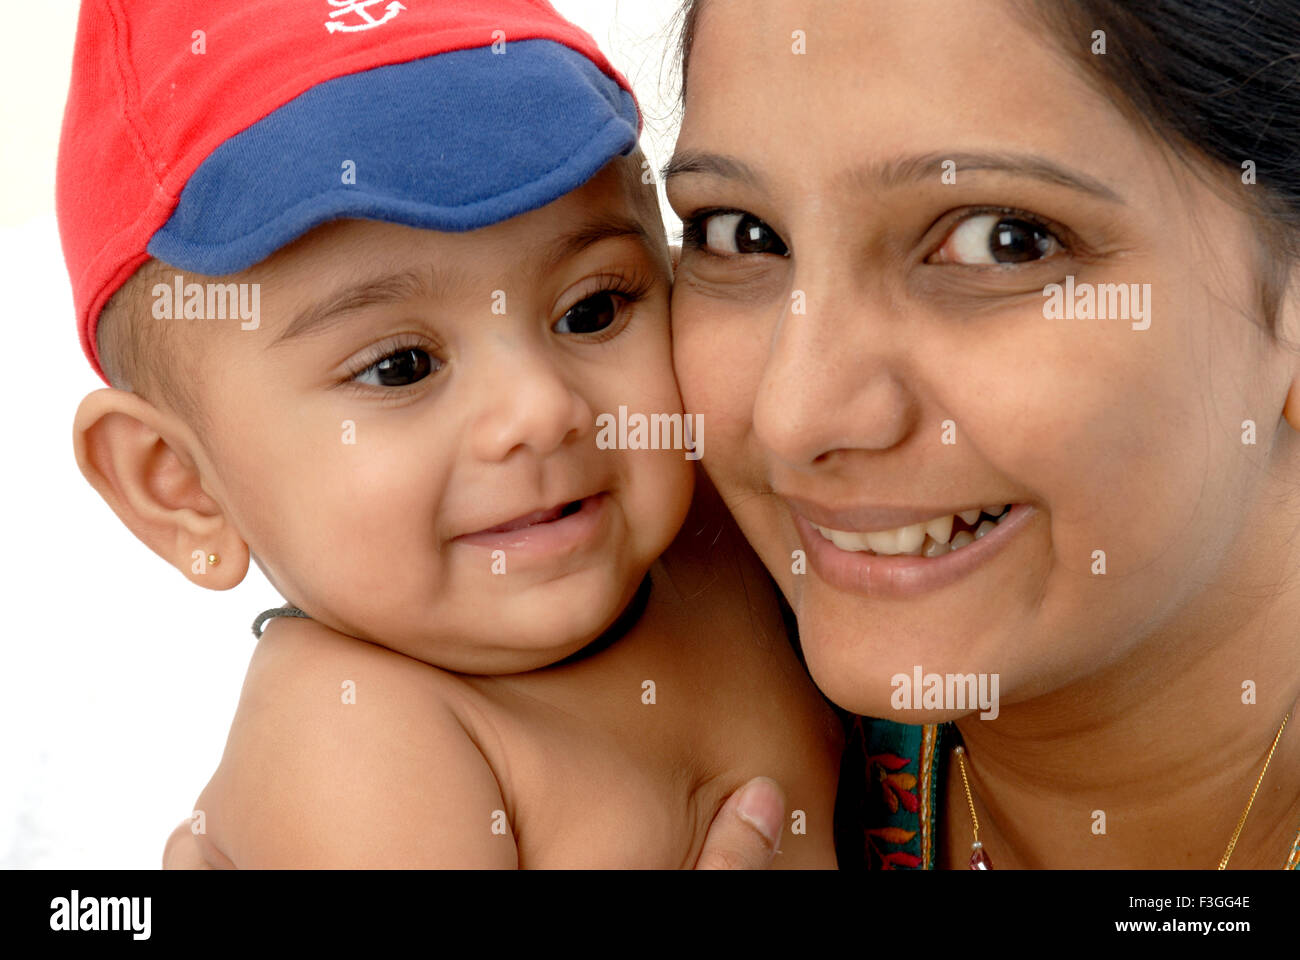 Indian mother and baby child cheeks touching on white background - MR#364 - RMM 134436 - Stock Image